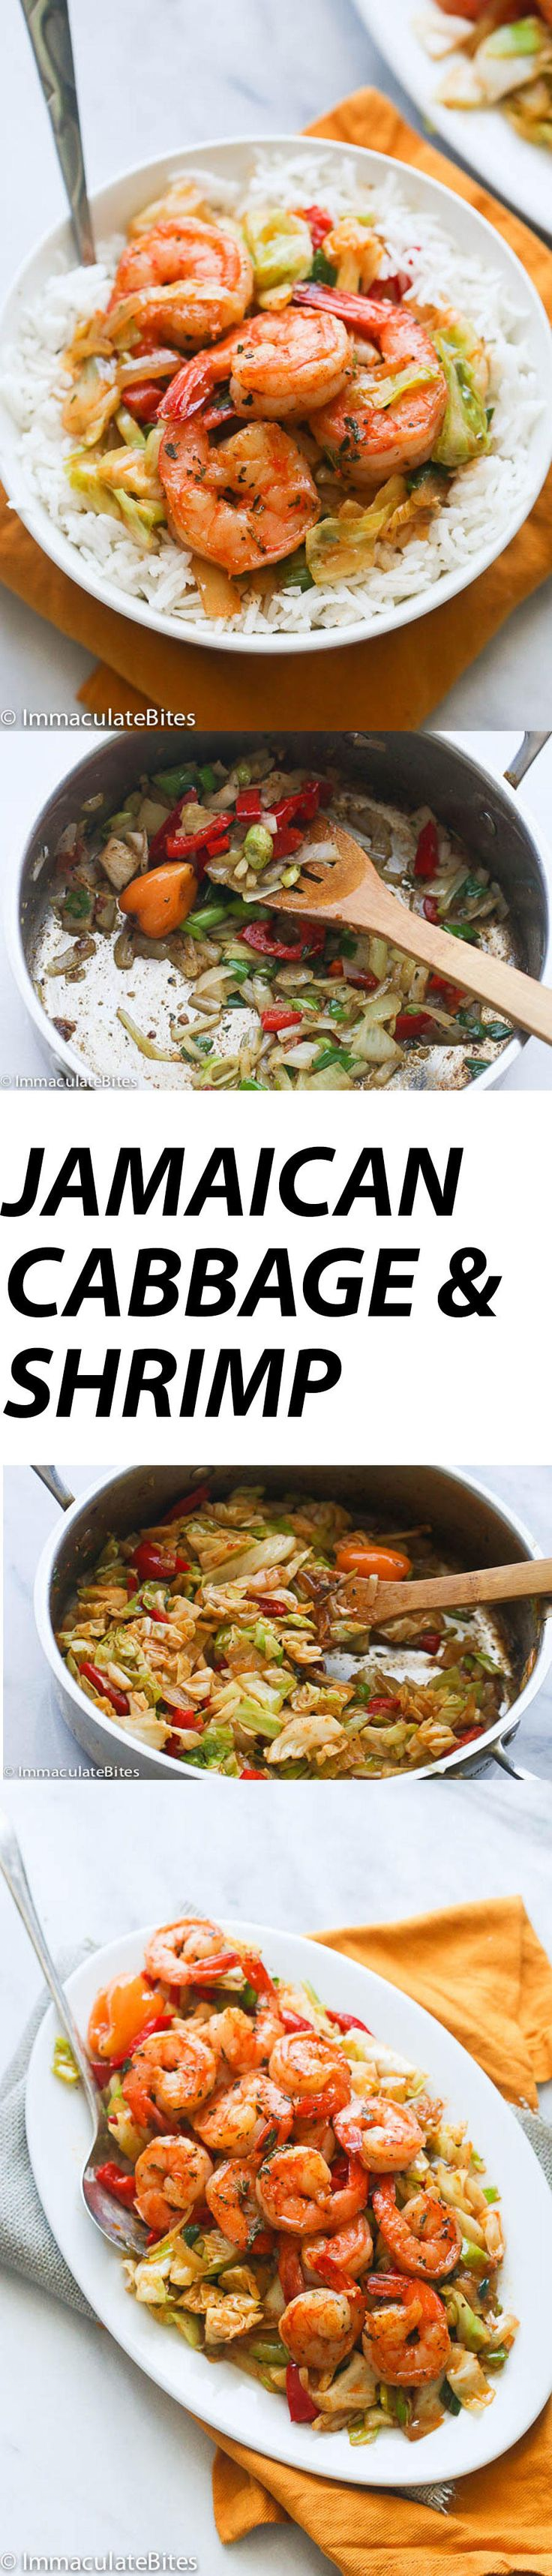 Jamaican Cabbage and Shrimp-A quick stir fried cabbage seasoned with aromatic spices  and topped with sauté shrimp . A Delicious  side dish to accompany any meal. Cabbage is very often overlooked, underrated and often goes to waste. But you don't have to throw it away all the time. Take your leftover cabbage, or buy some at the …